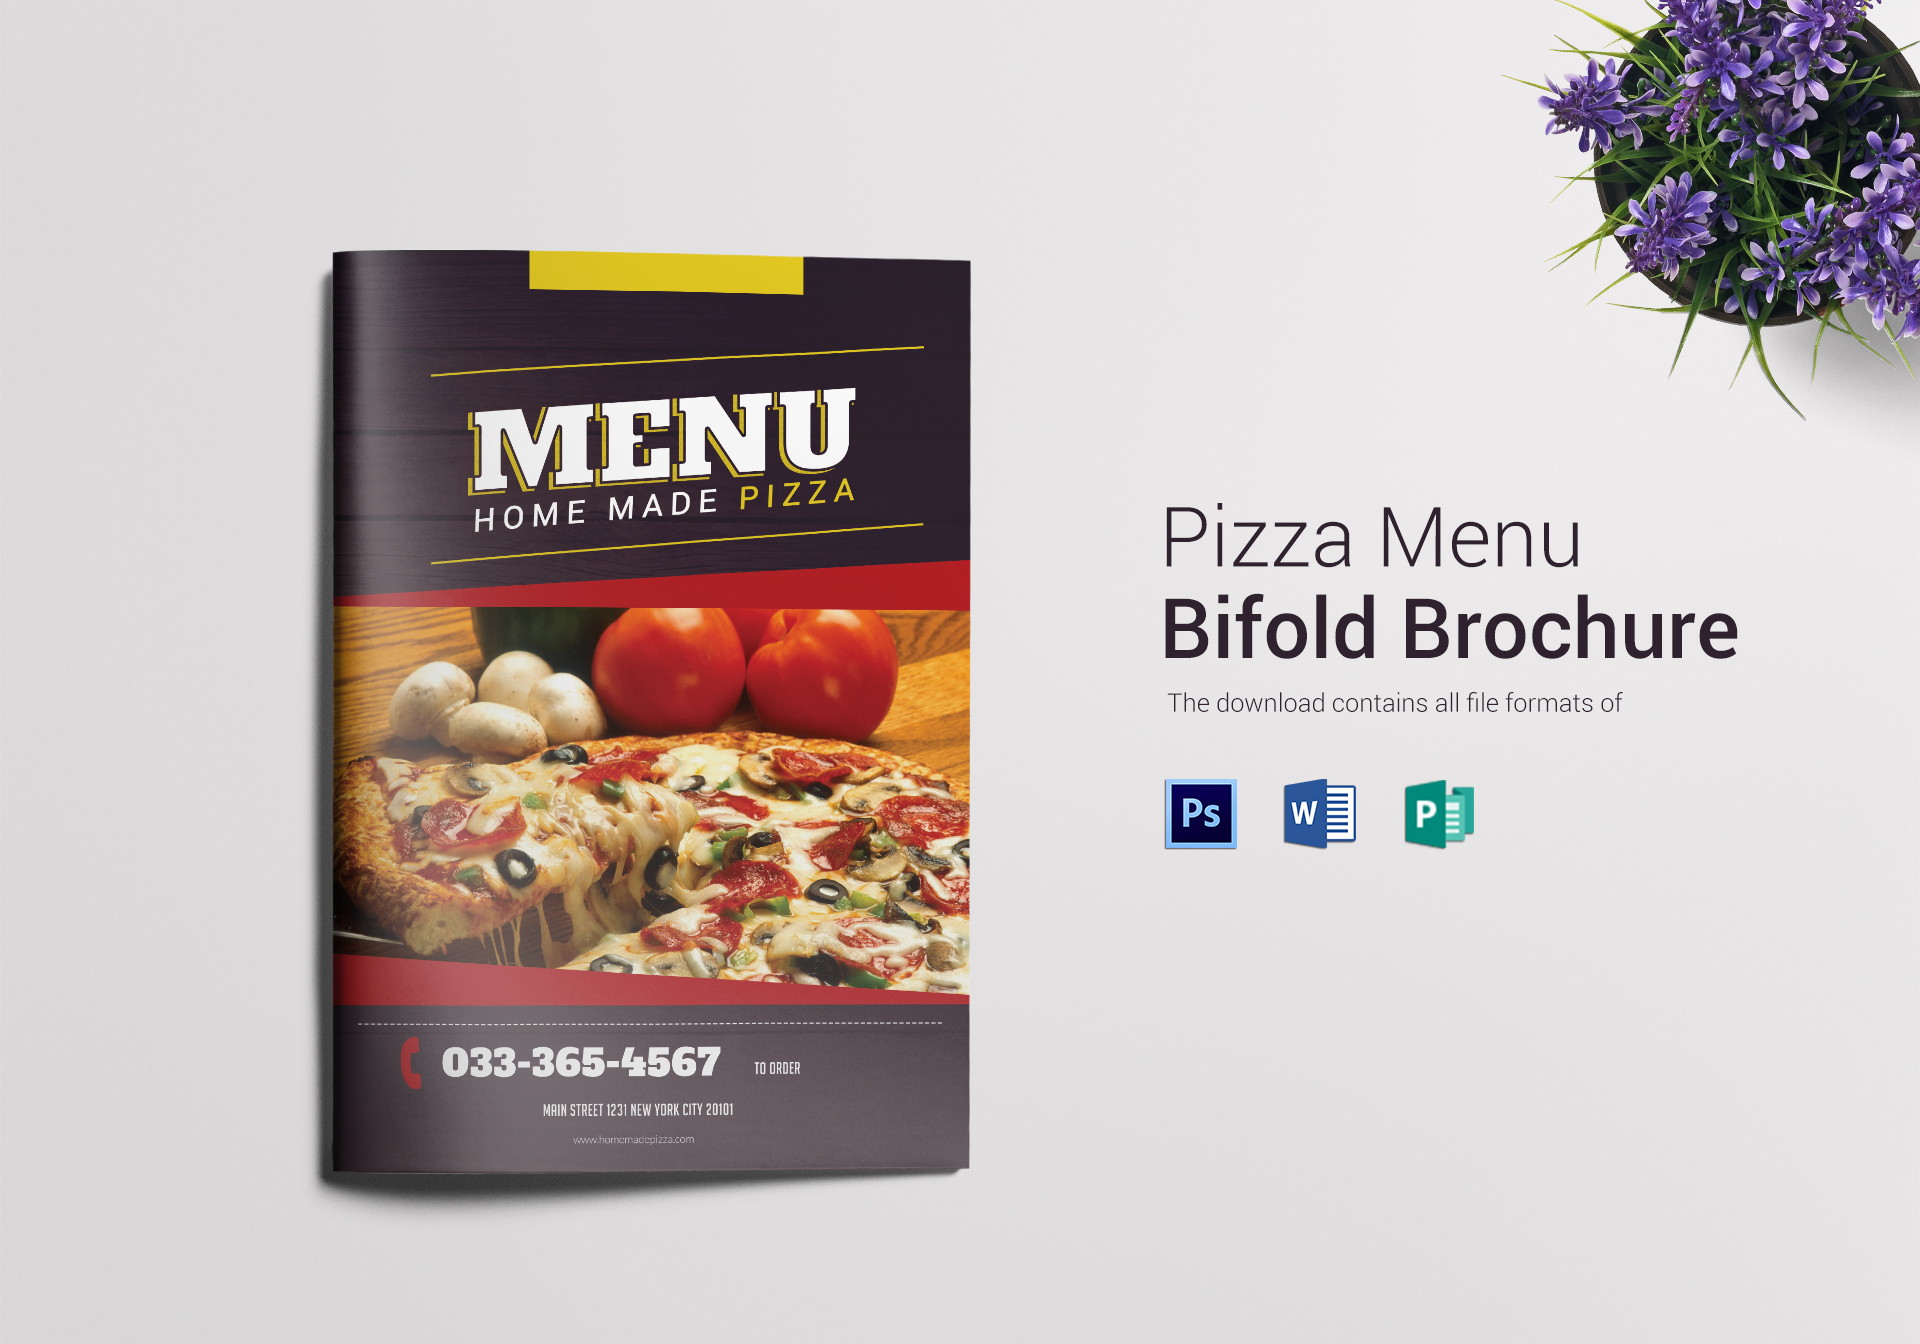 Pizza Menu Bifold